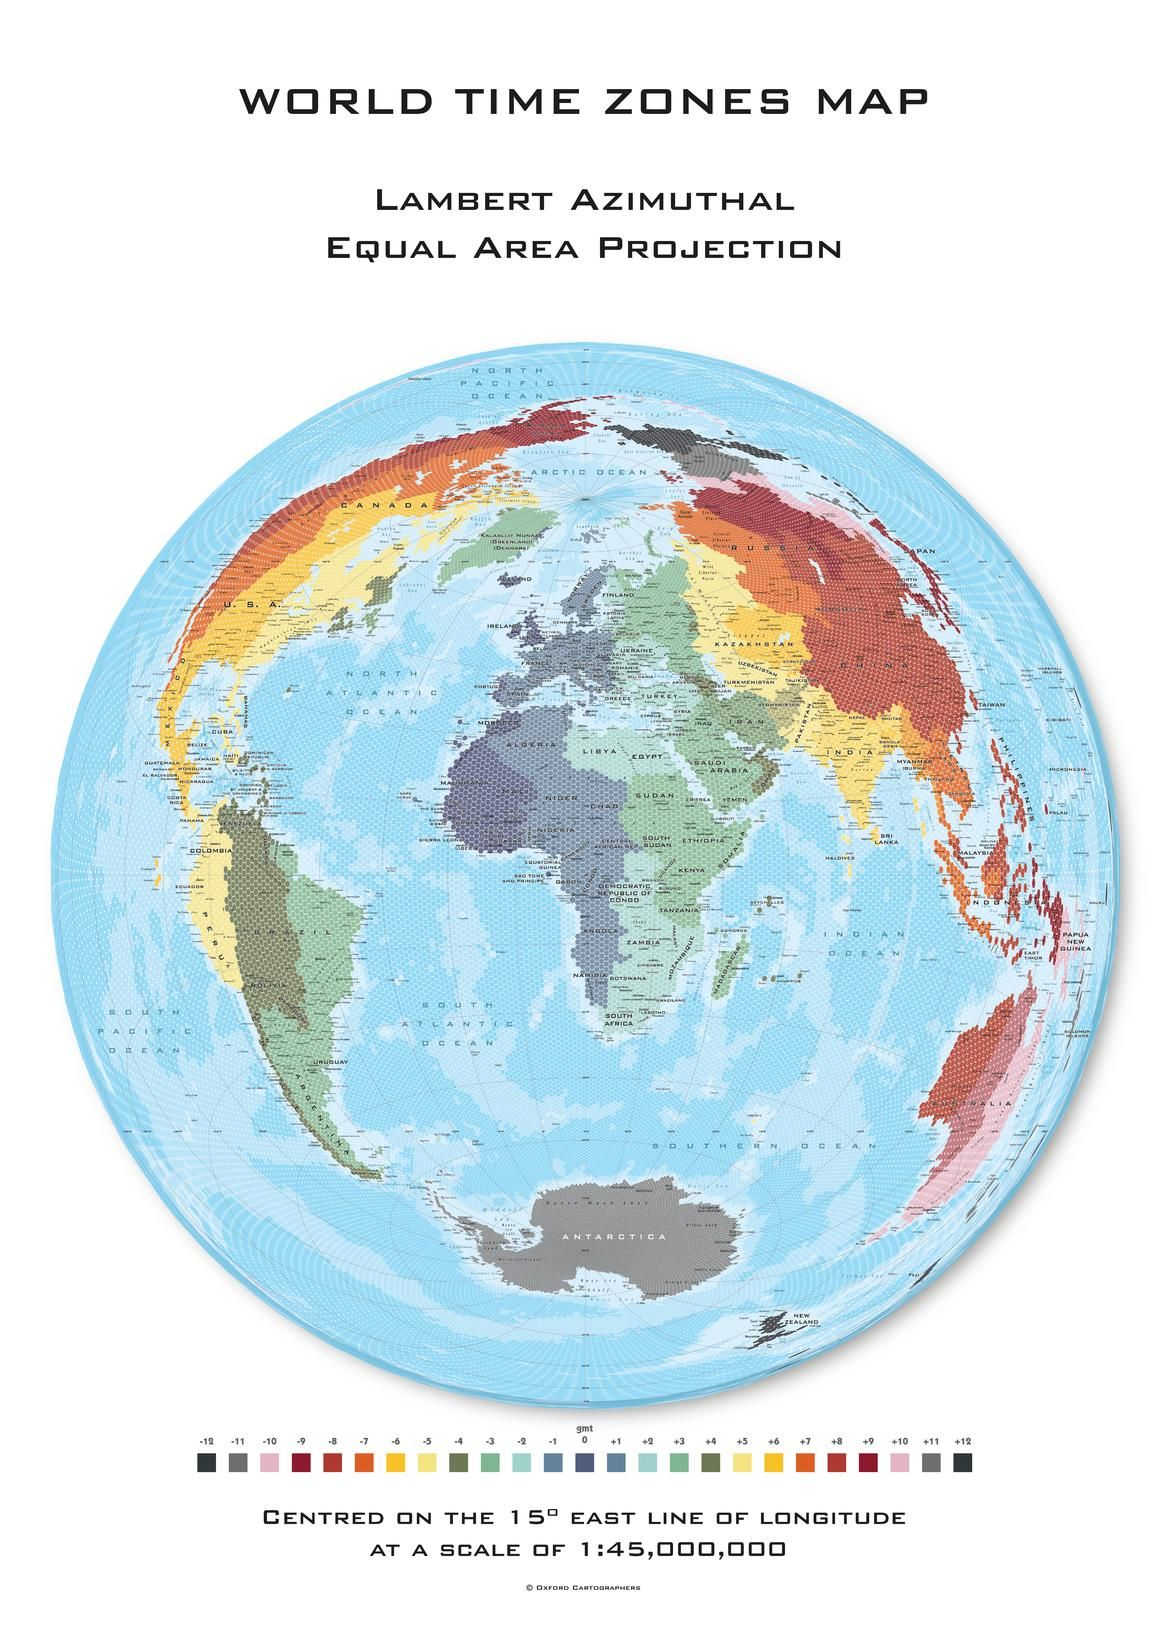 Map Projections: Tools For Portraying Earth's Surface - MapTrove on world trade center projects, world equator, world maps accurate not eurocentric, world thematic maps, world globes, world maps shown in different ways, world landforms, world war 1 projects, robinson projection and mercator projections, tangent or secant projections, world robinson projection, world tropic of cancer, world coordinate system, world maps continental drift future, world time zones, world typography,